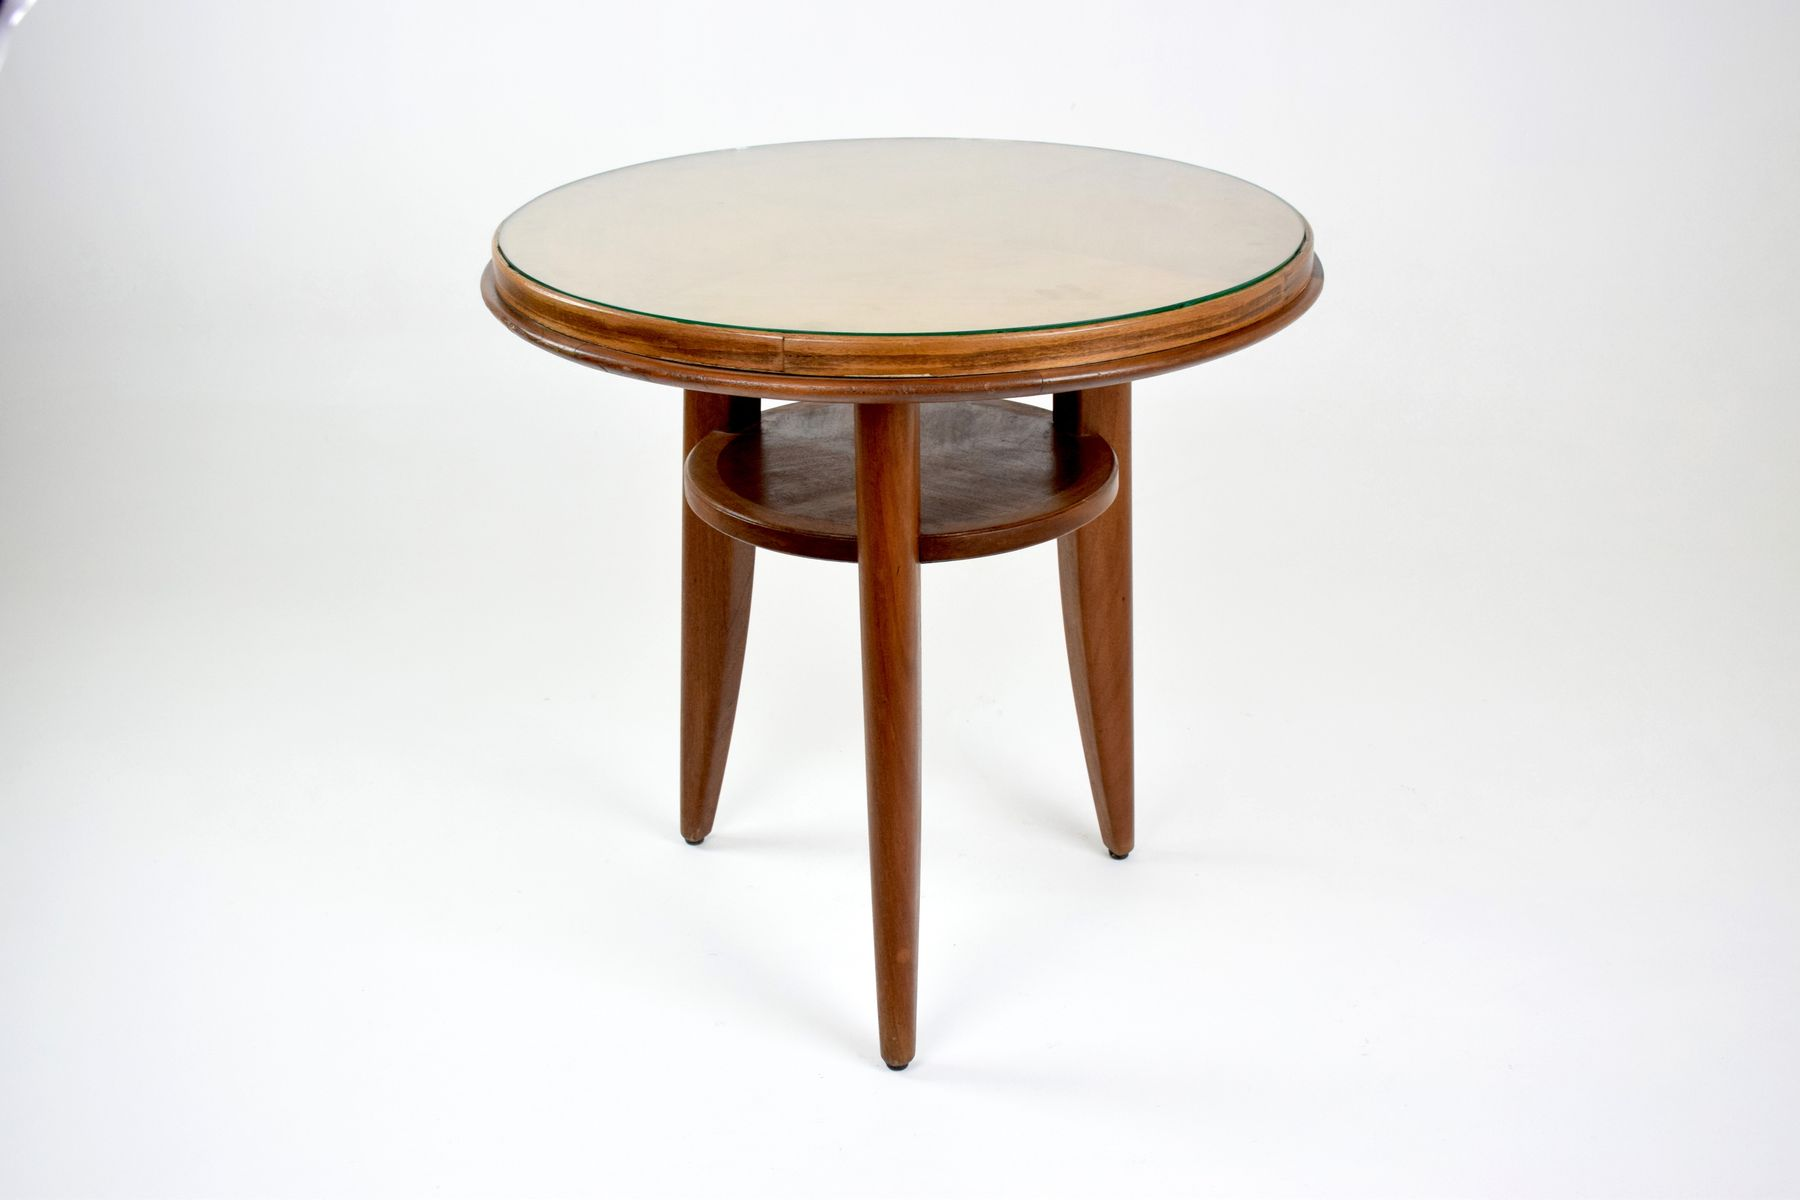 Art deco beech side table 1940s for sale at pamono art deco beech side table 1940s geotapseo Images